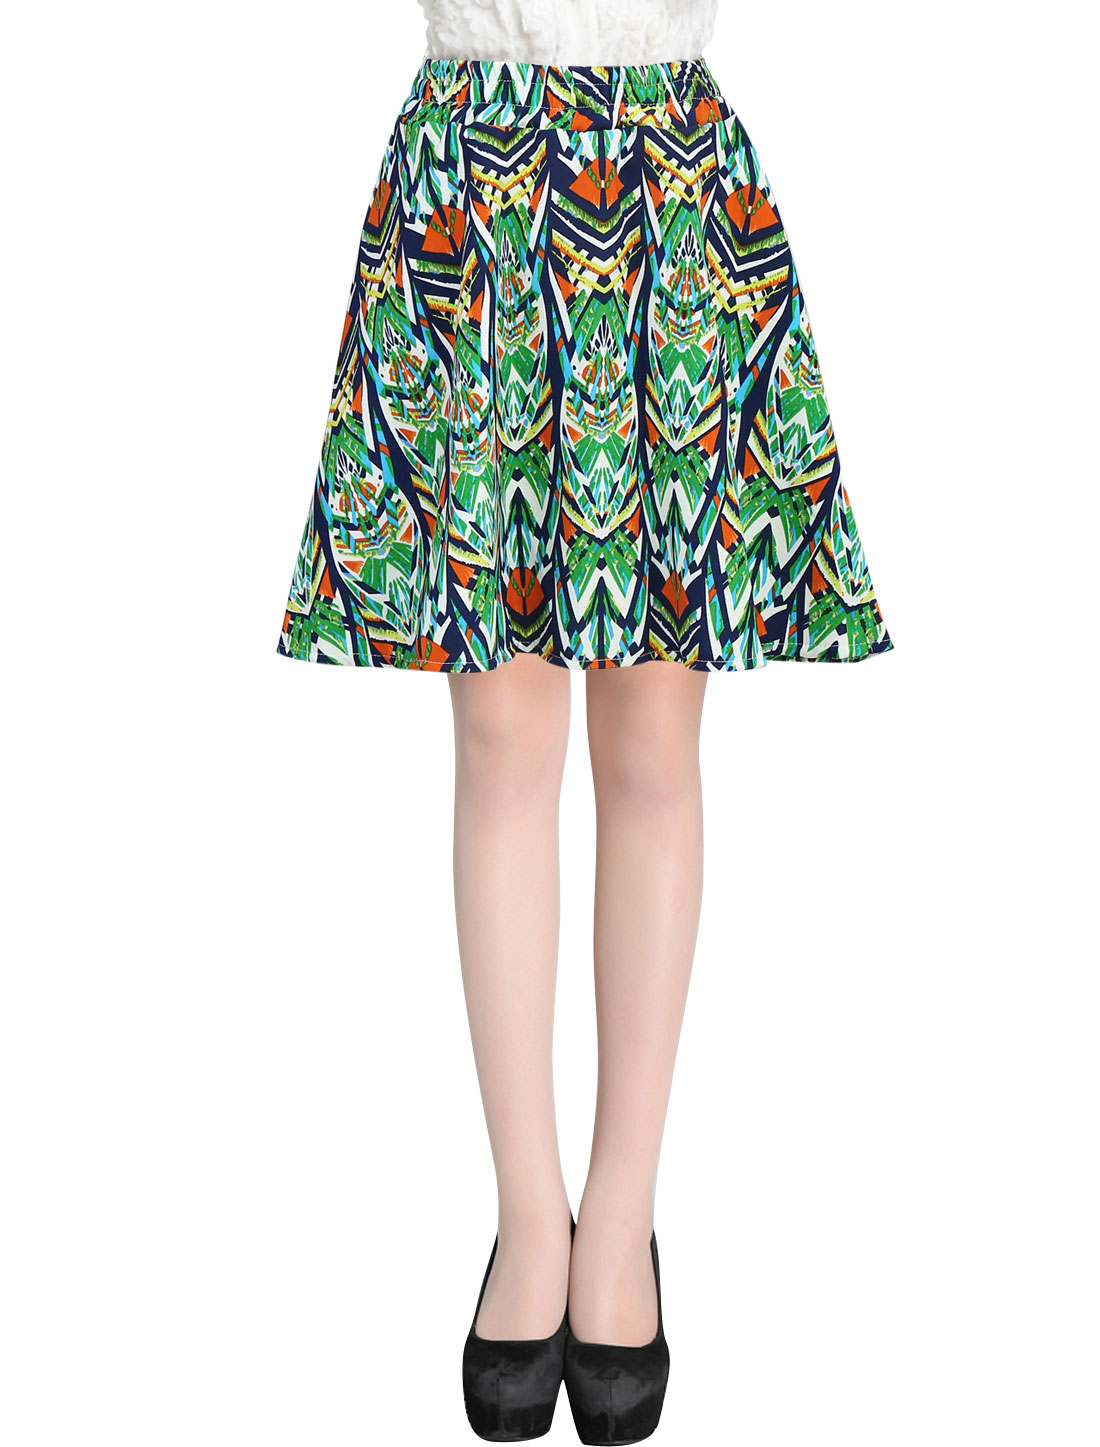 Ladies Summer Zipper Fly Novelty Prints Mini Skirt Multicolor XS